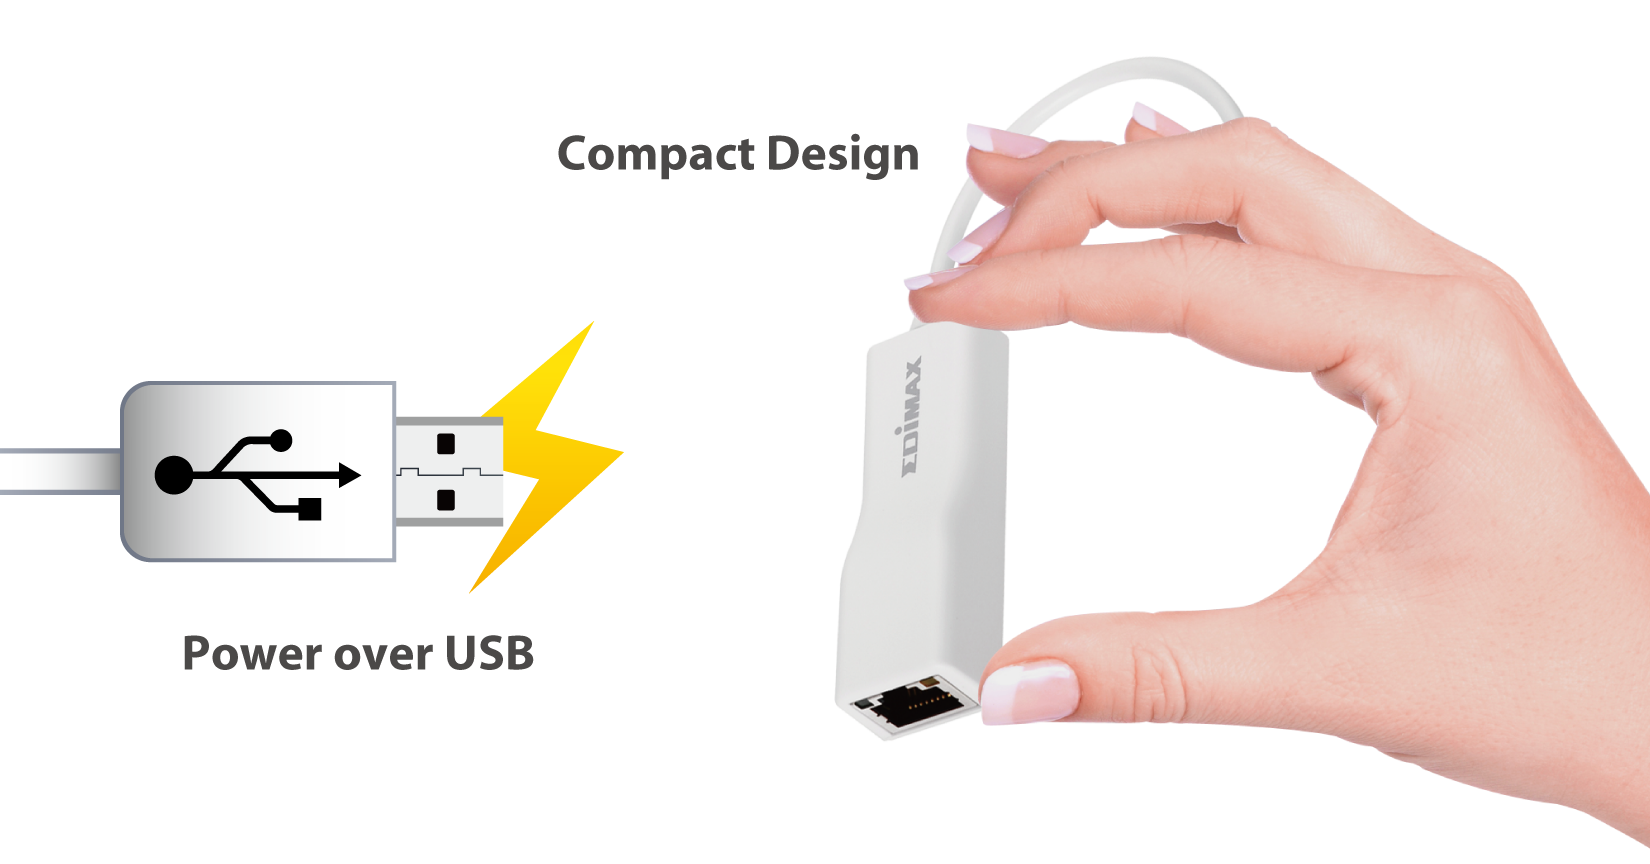 Edimax USB 2.0 Fast Ethernet Adapter  EU-4208_compact_design_power_over_USB.png